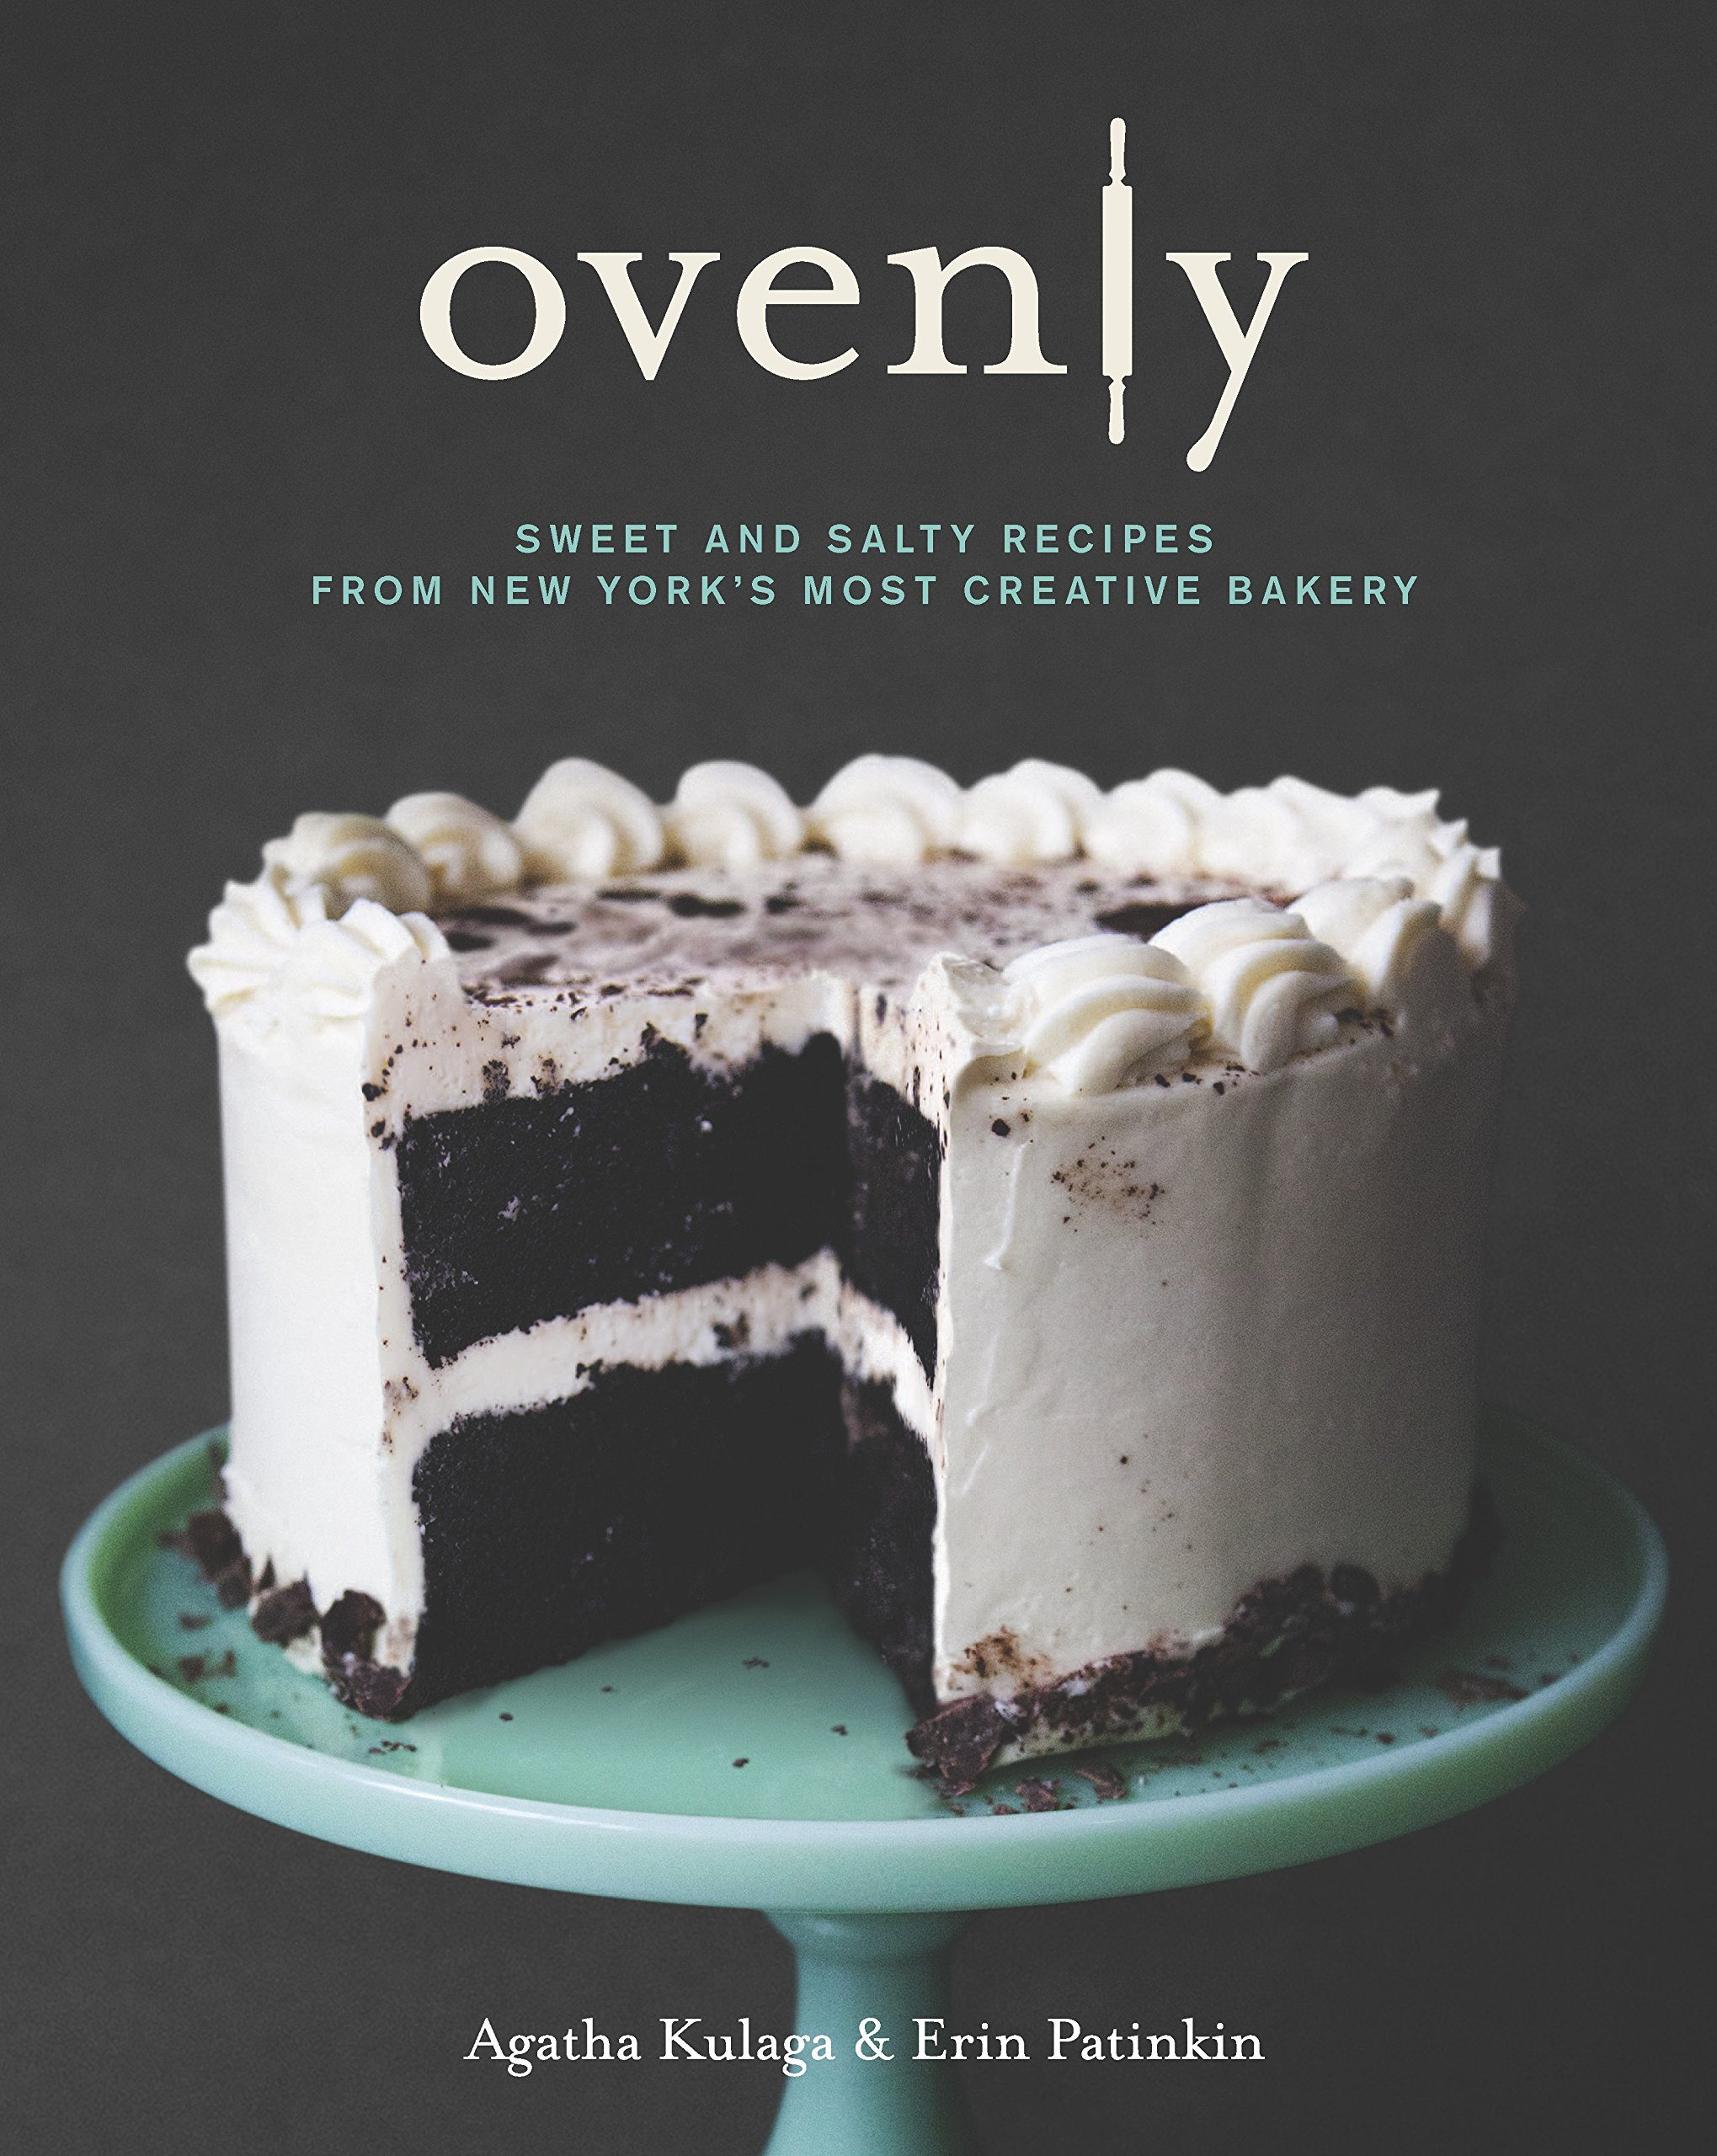 Ovenly: Sweet and Salty Recipes from New York's Most Creative Bakery by Harlequin